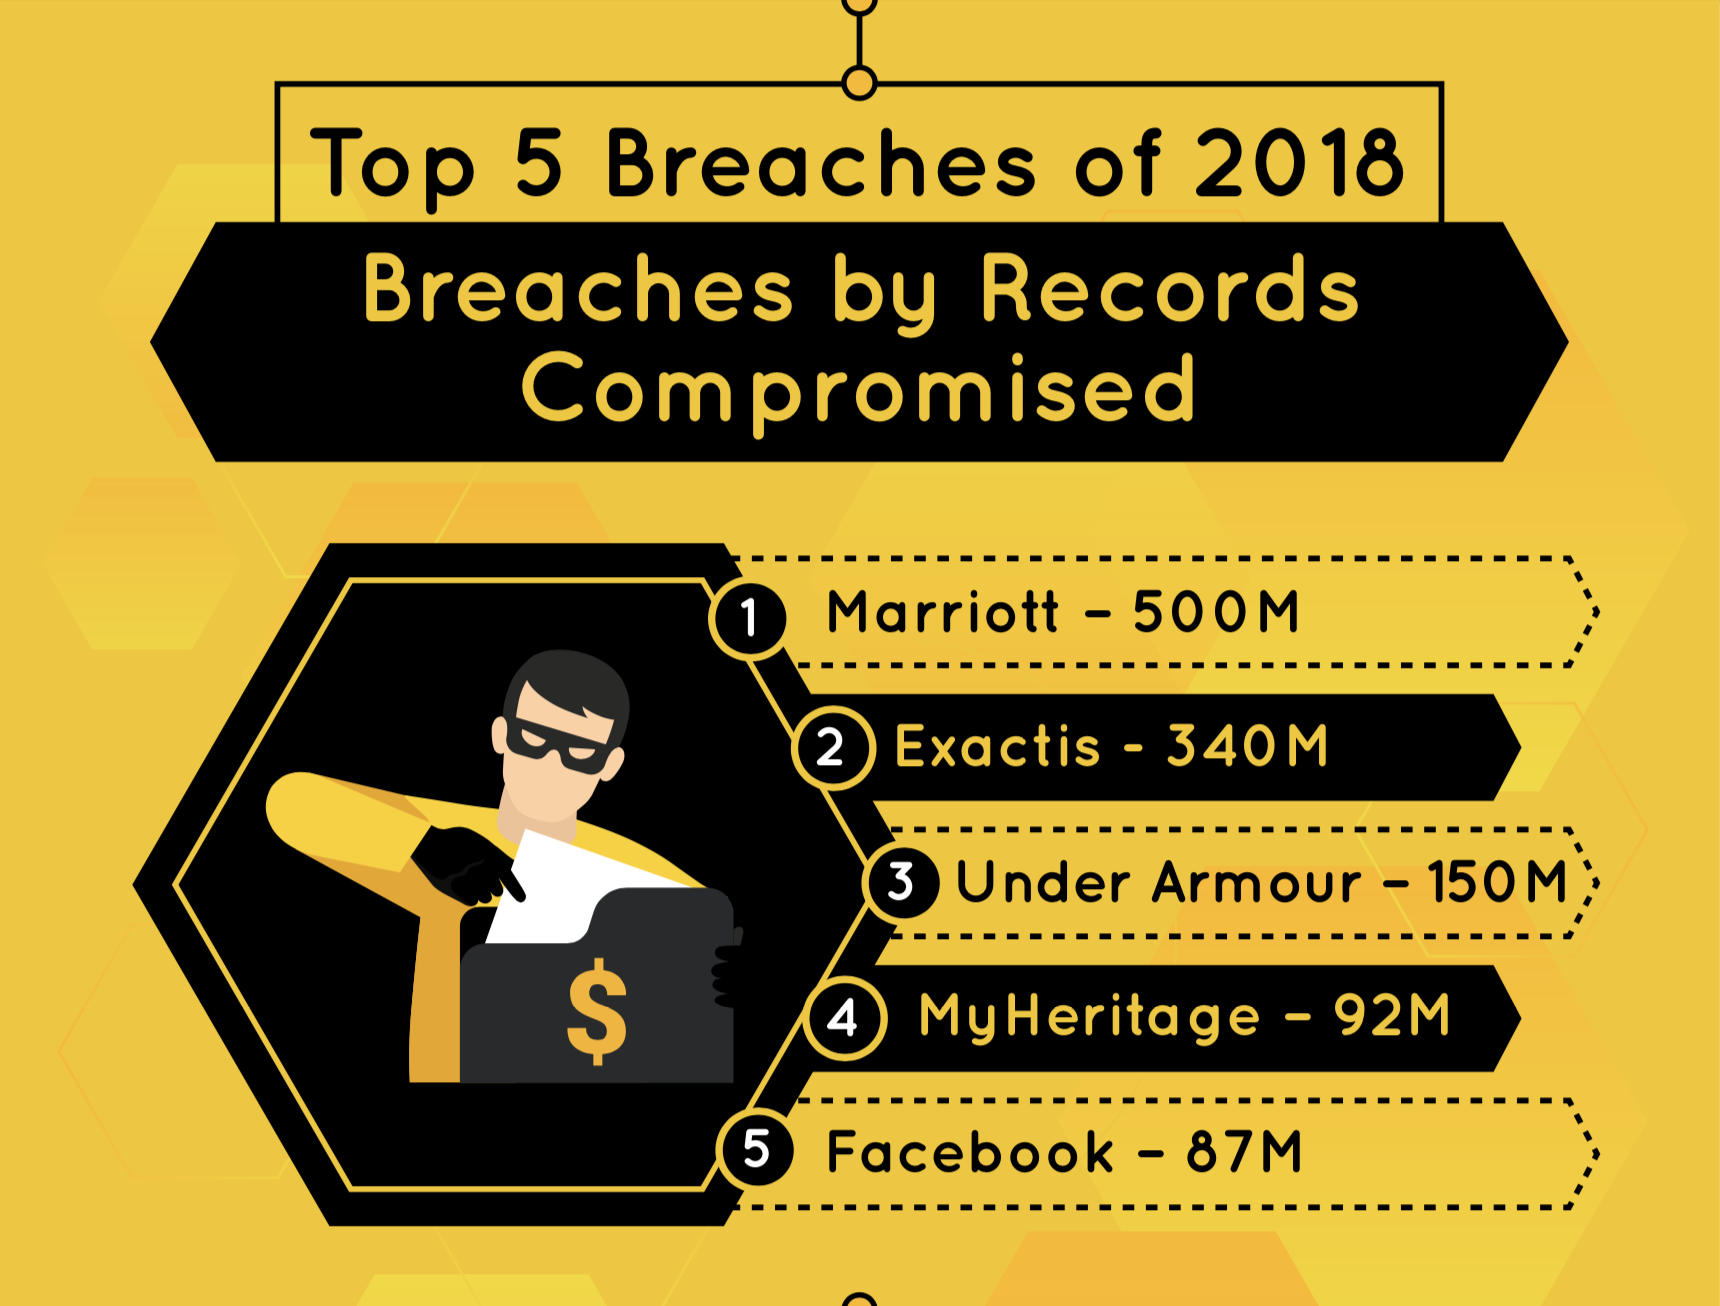 Top Data Breaches of 2018